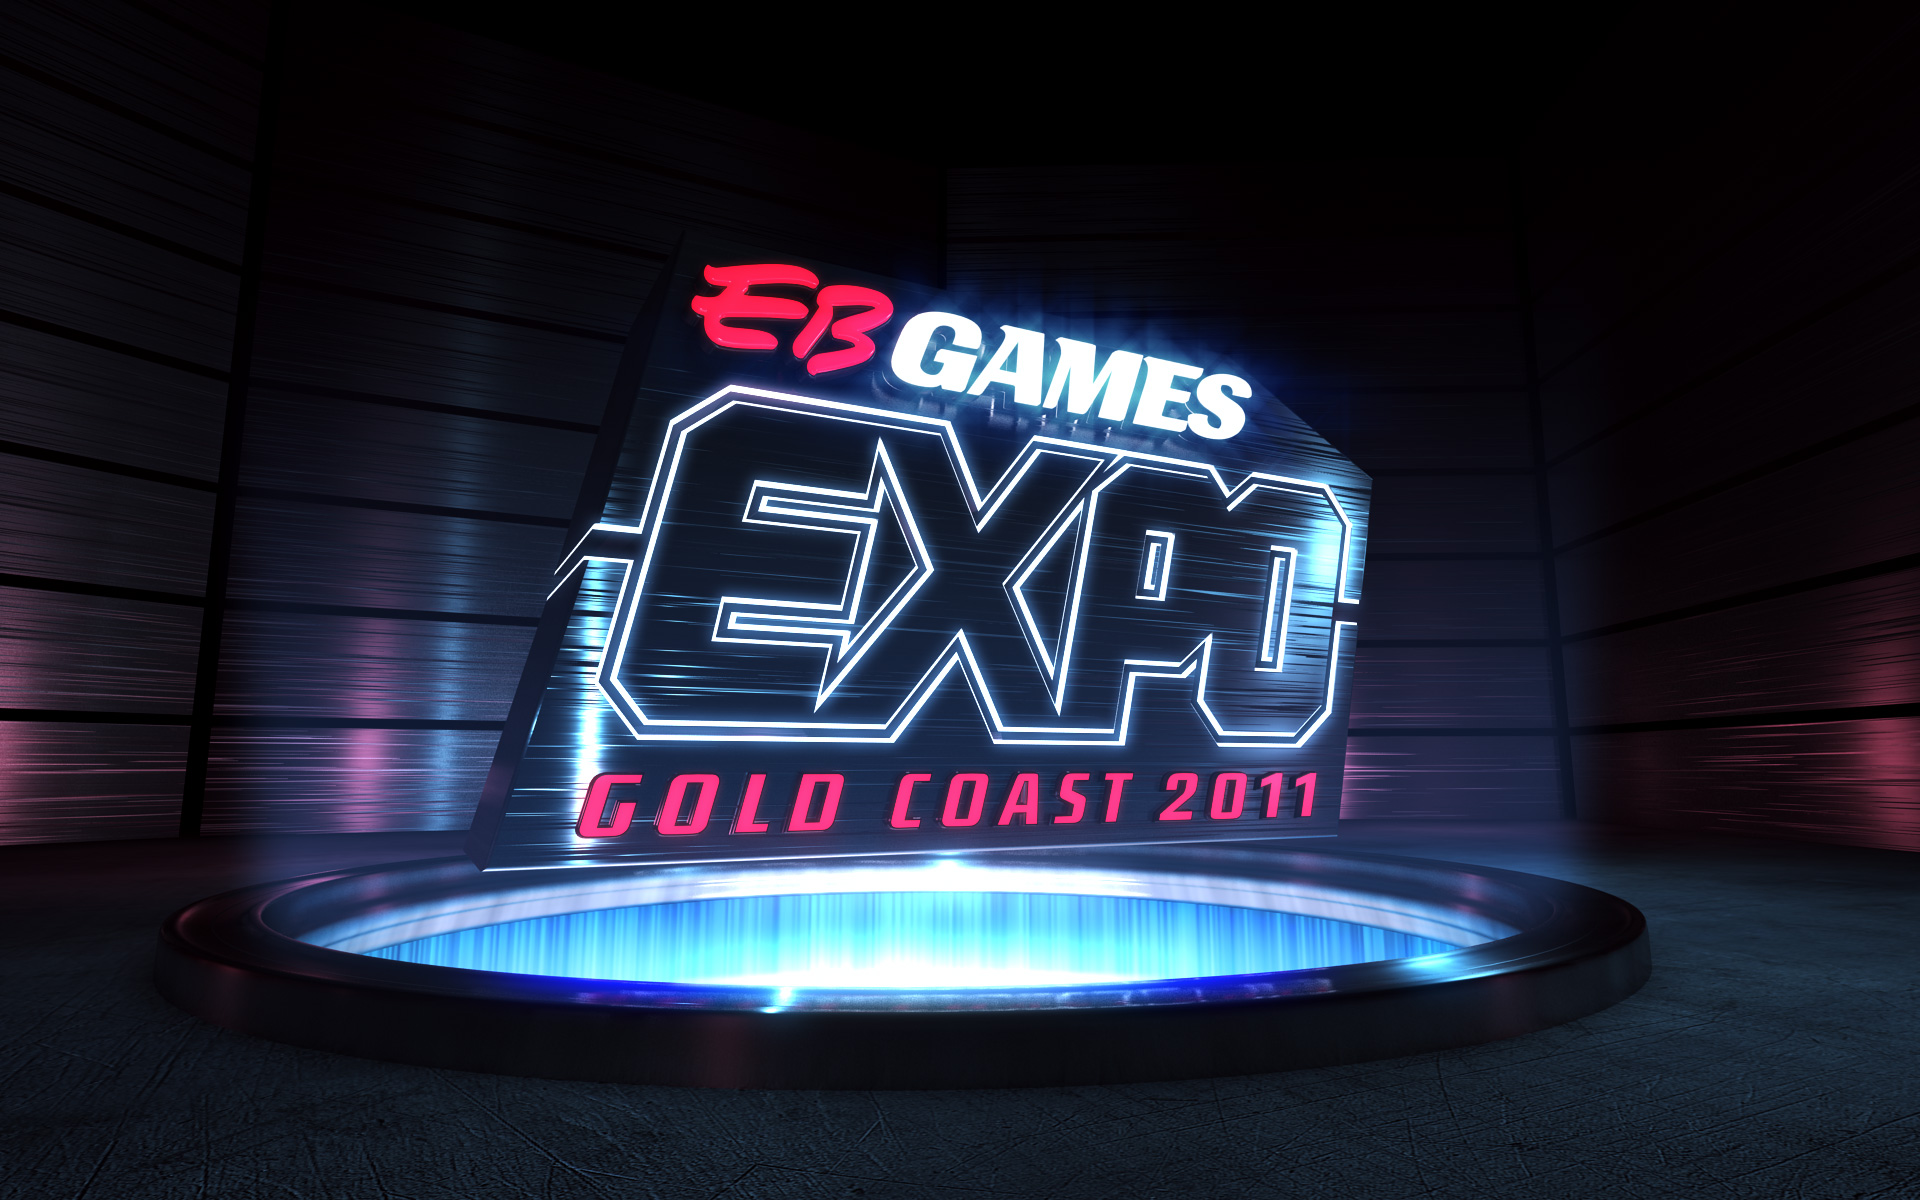 EB Games Expo on the Gold Coast